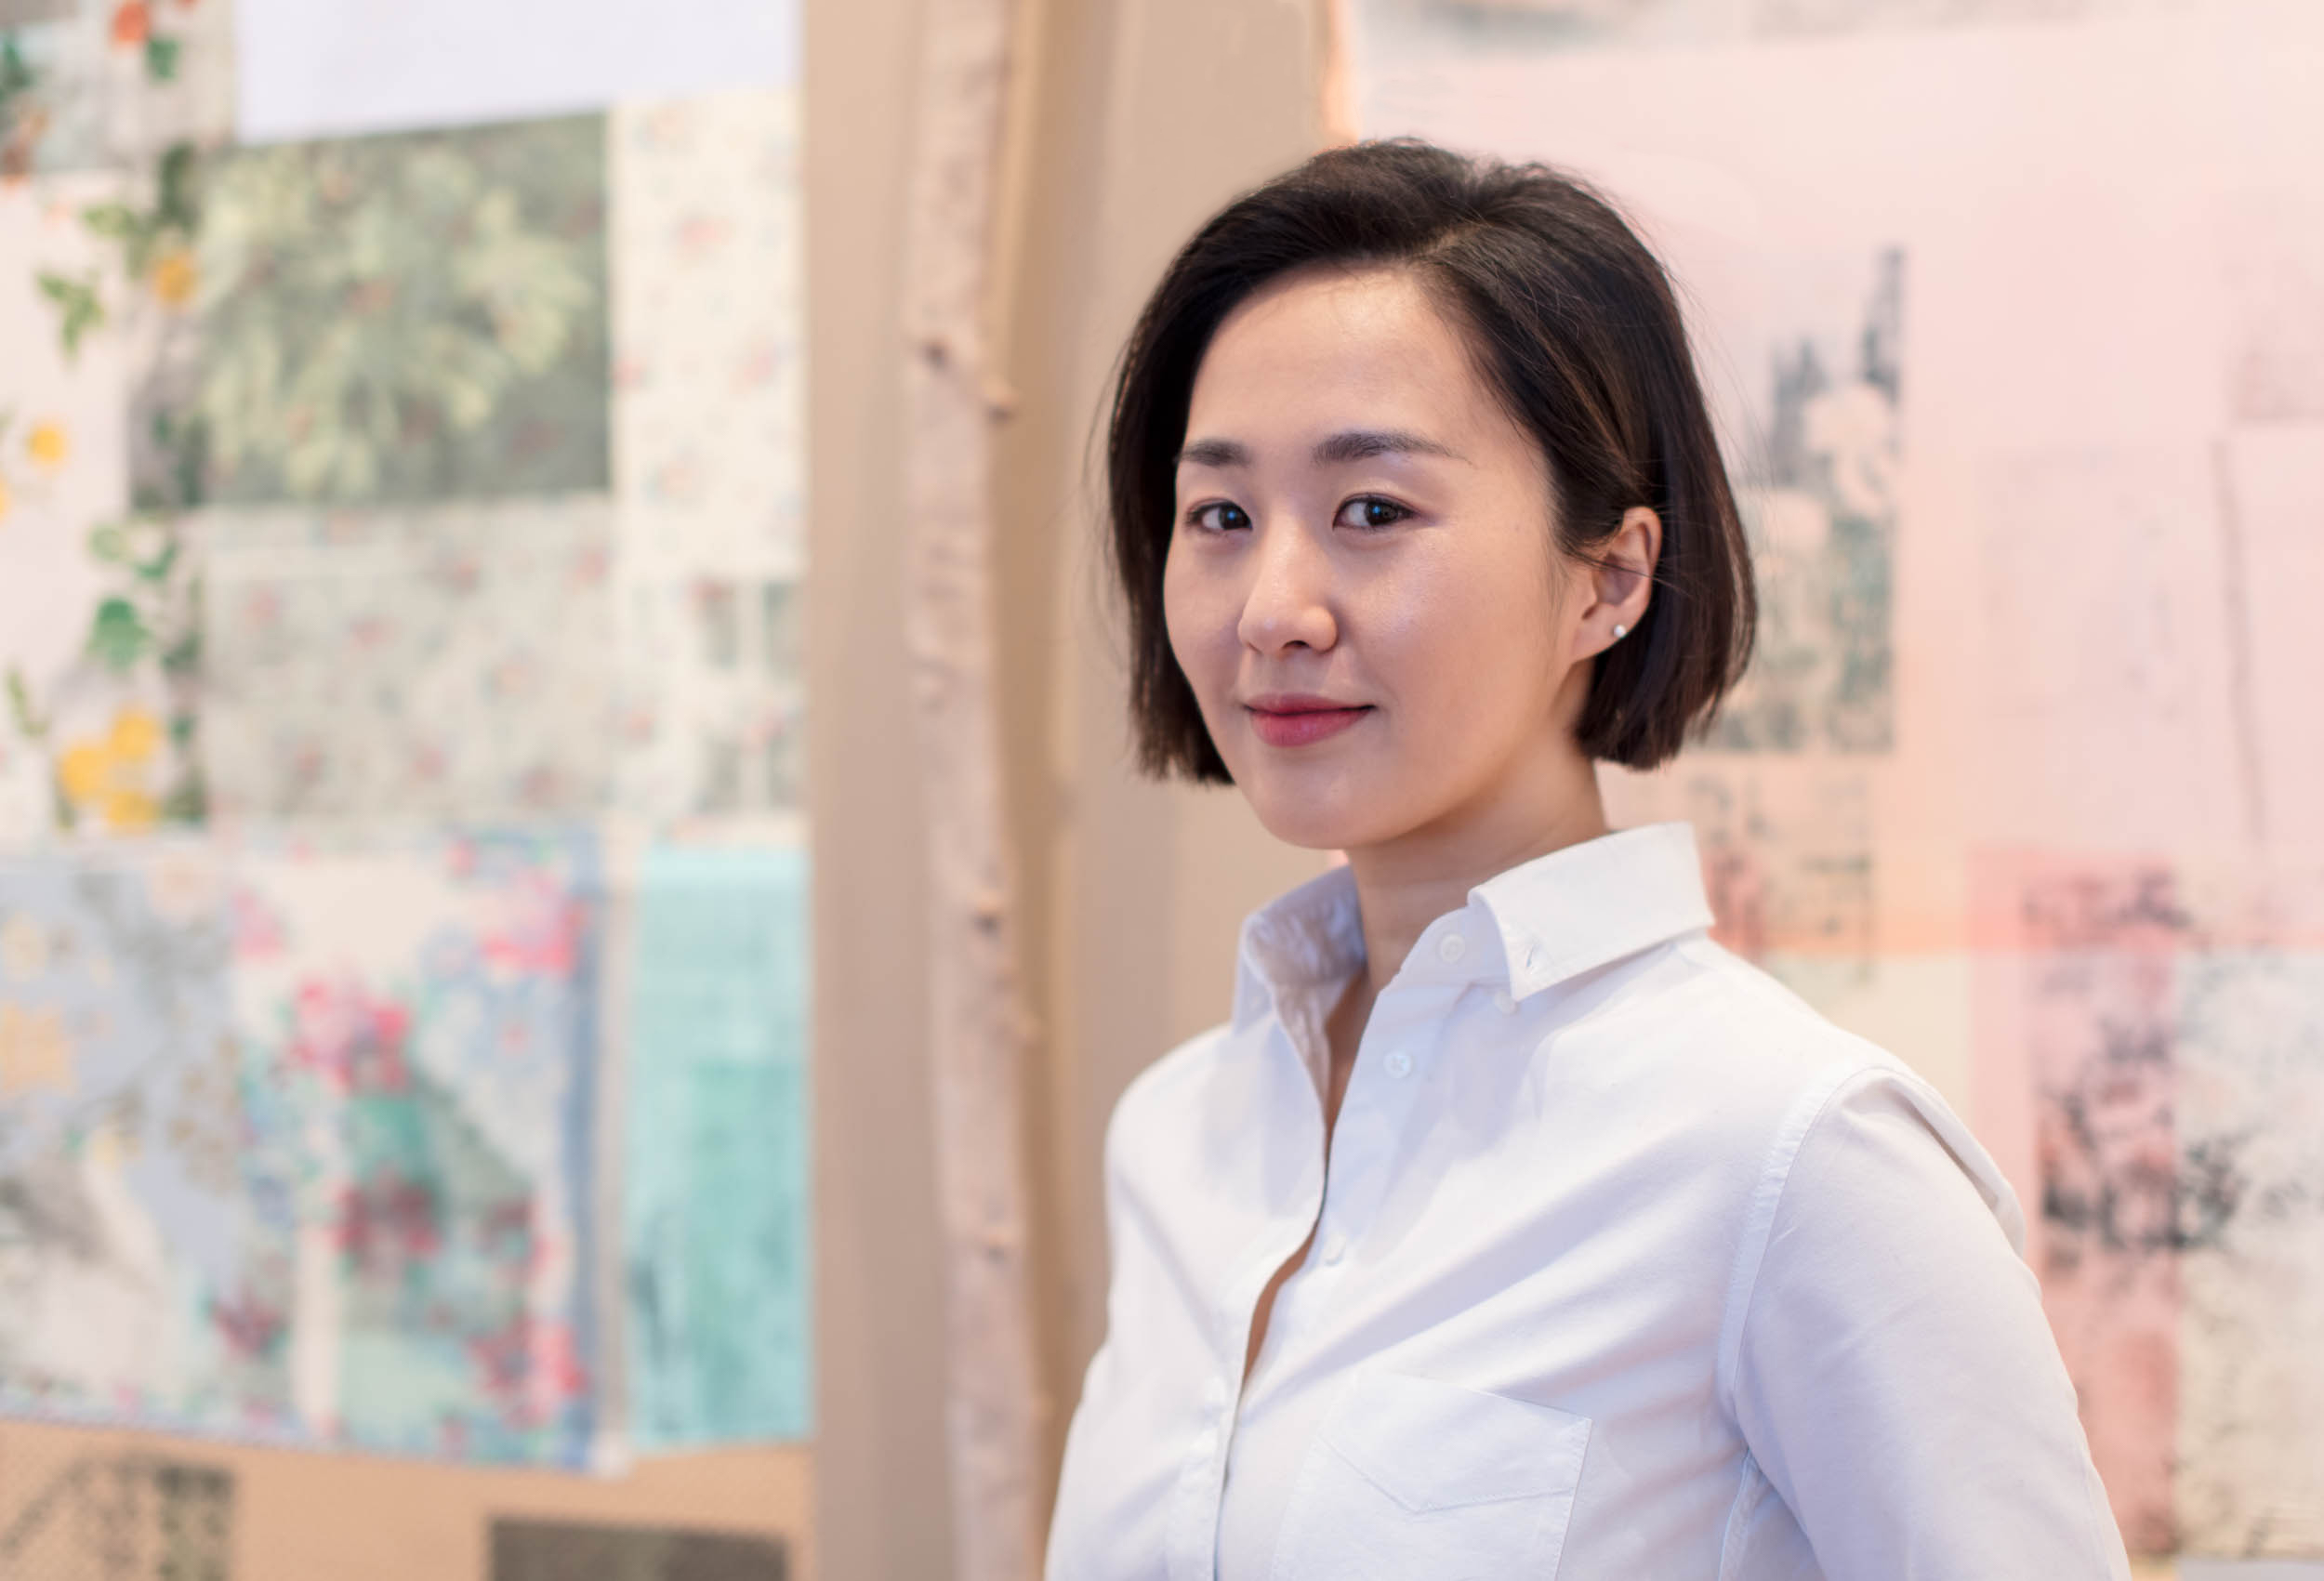 Galerie Thaddaeus Ropac Appoints Kyu Jin Hwang as Associate Director for Asia